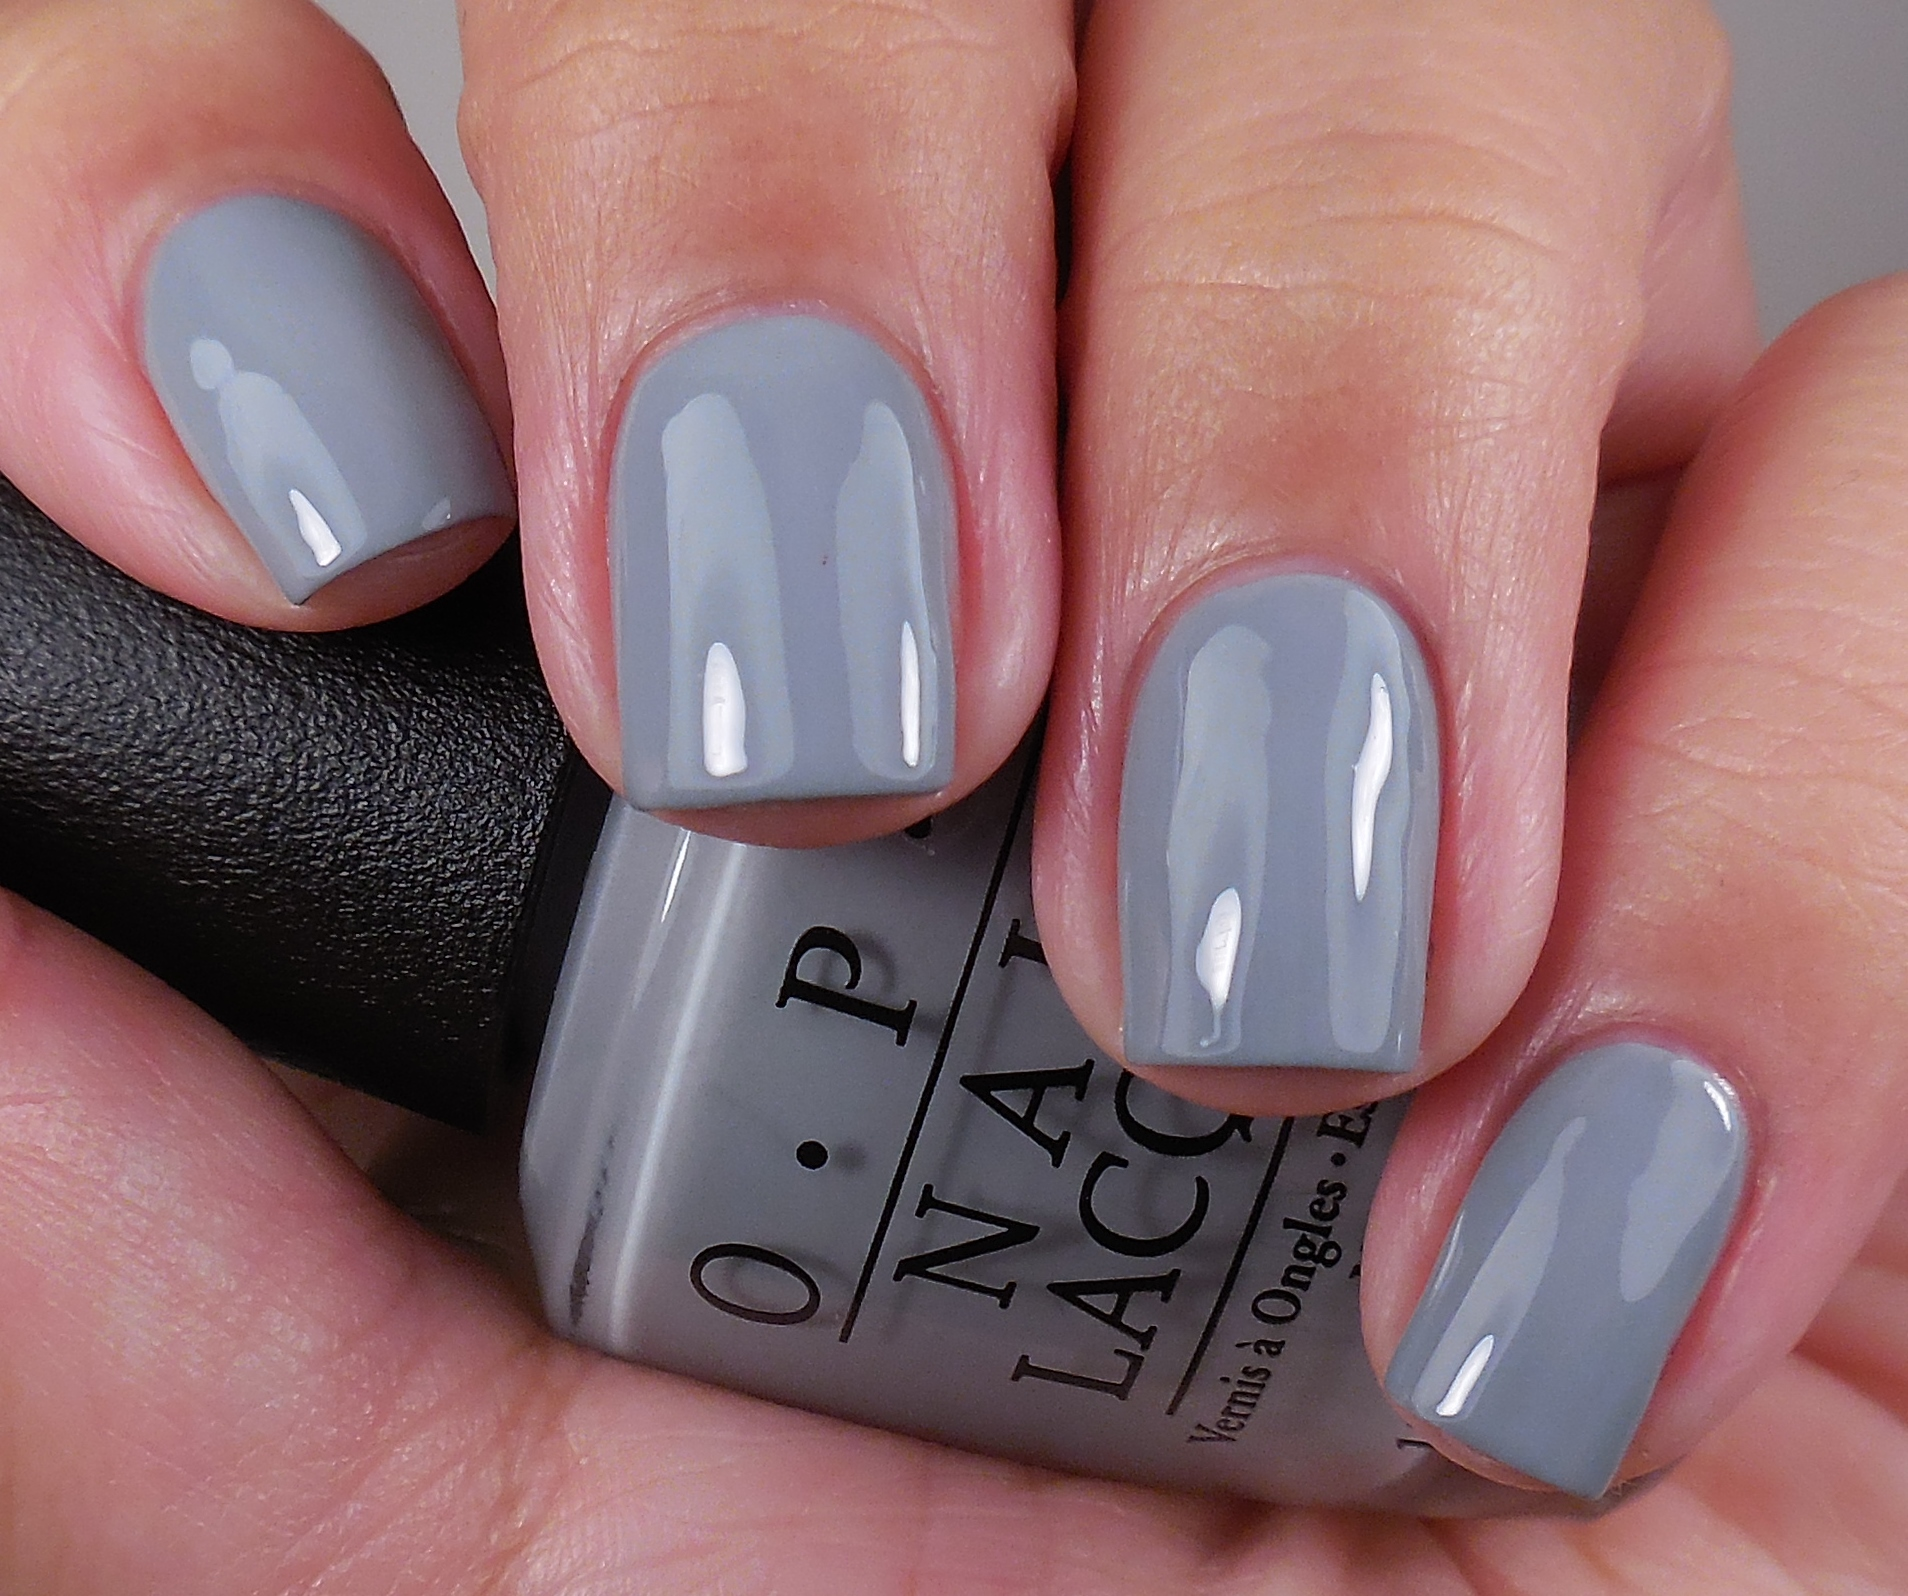 Opi 50 Shades Of Grey Collection Of Life And Lacquer